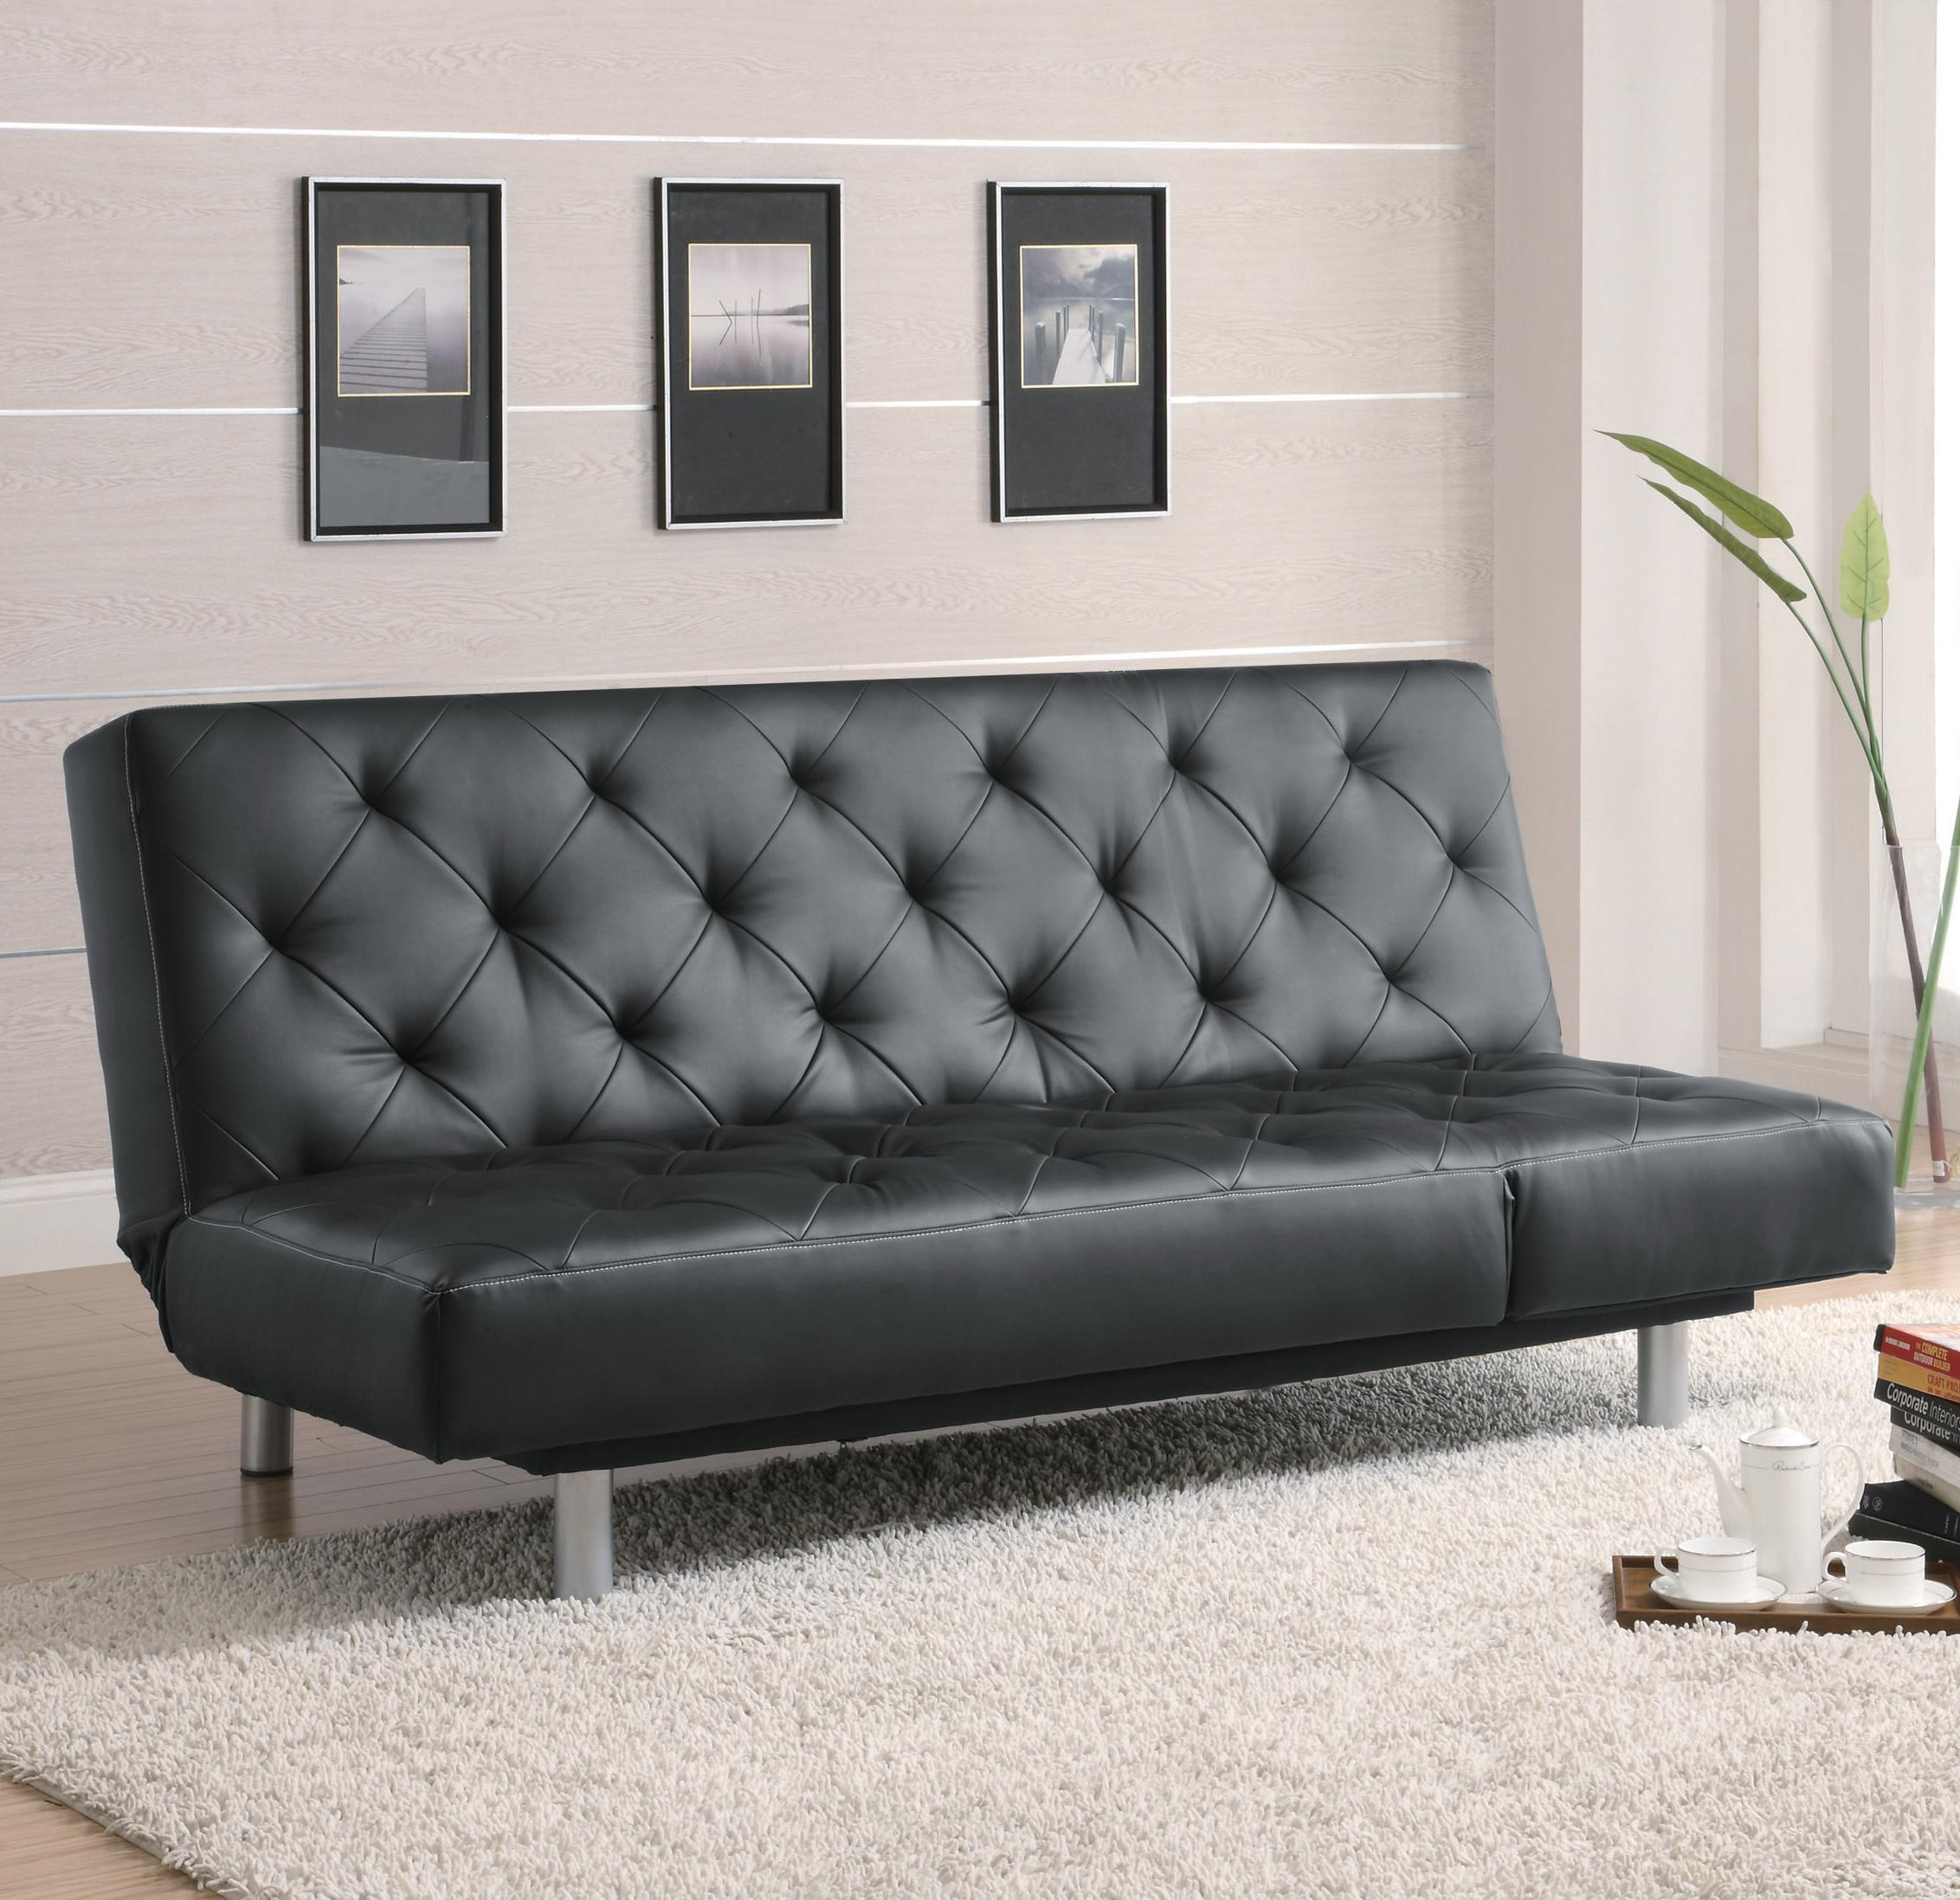 Black Vinyl Tufted Sofa Bed in up position